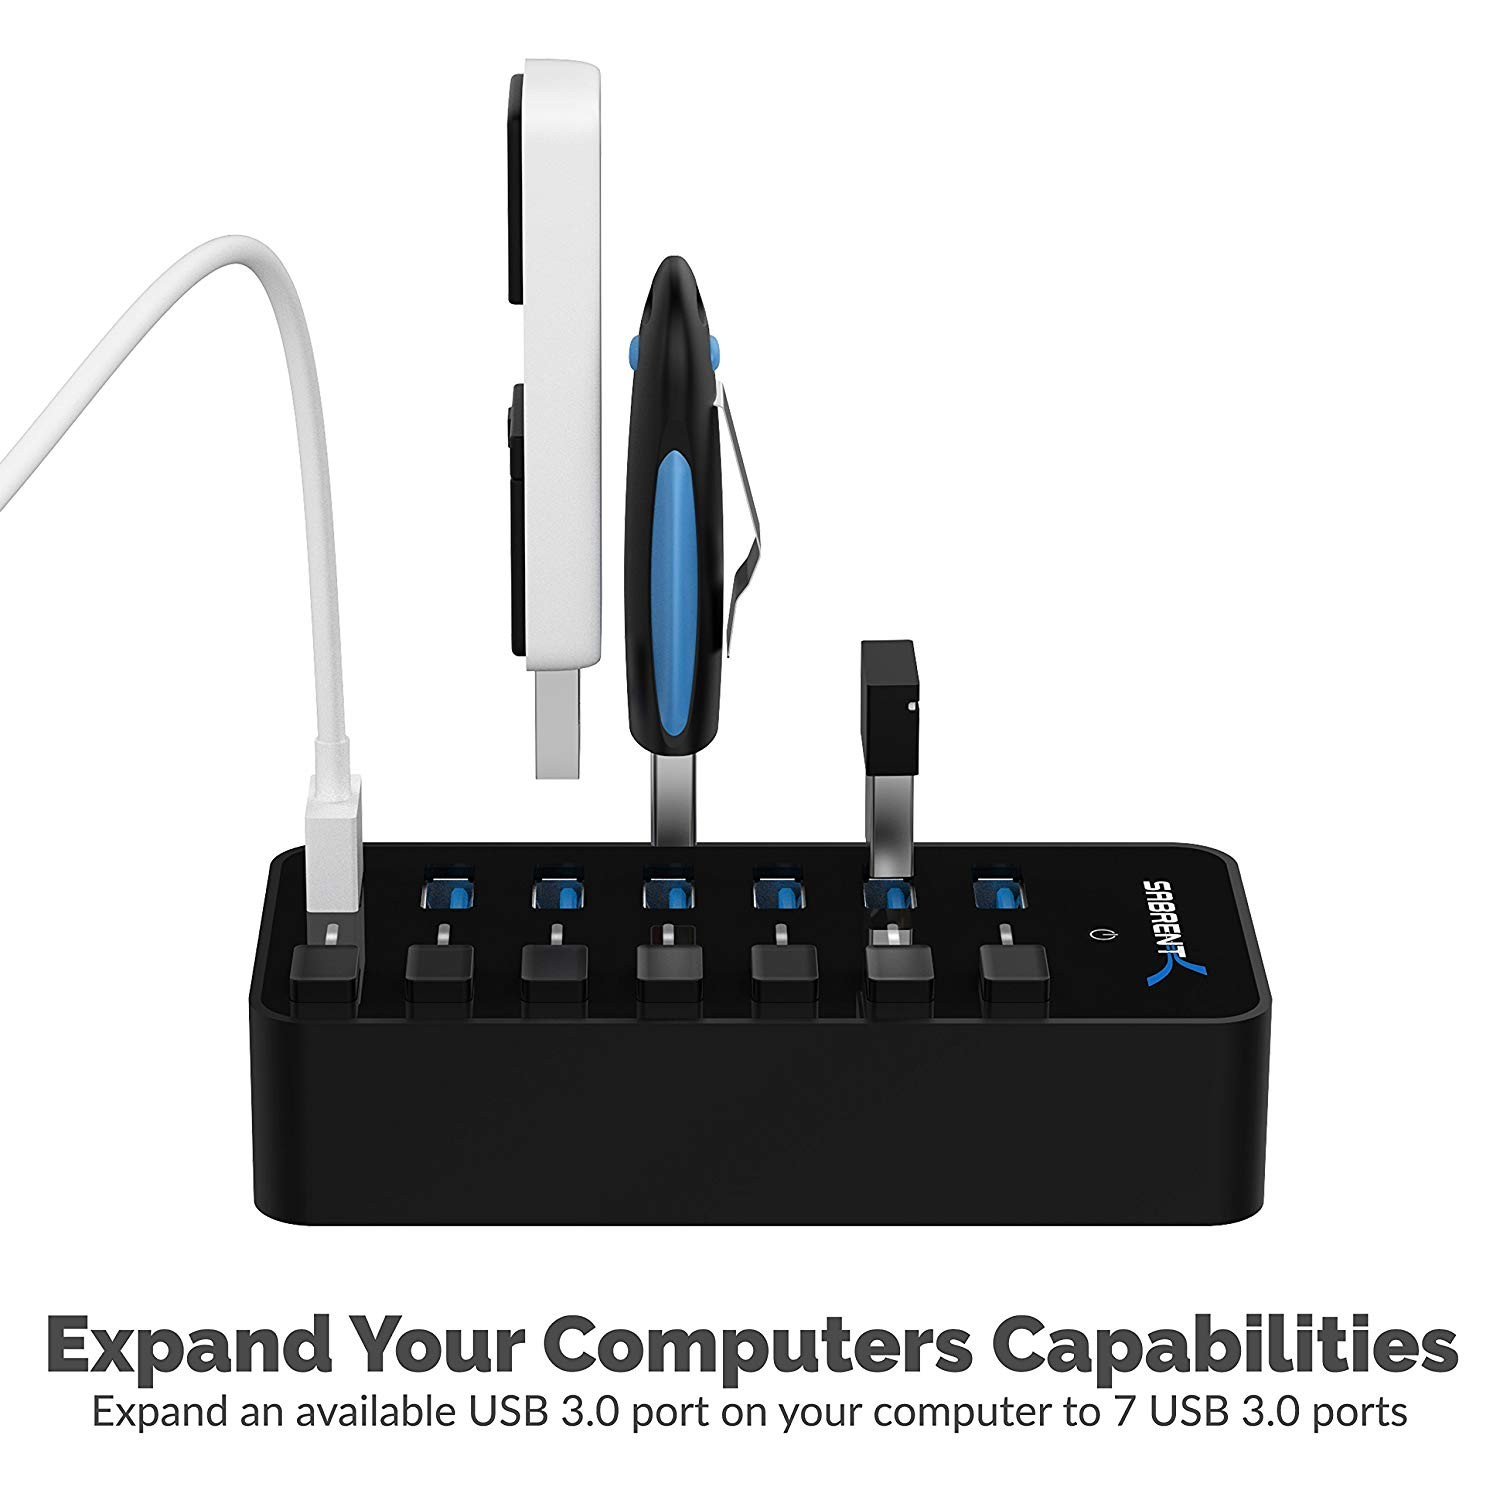 Sabrent 36W 7-Port USB 3.0 Hub with Individual Power Switches and LEDs includes 36W 12V/3A power adapter, HB-BUP7